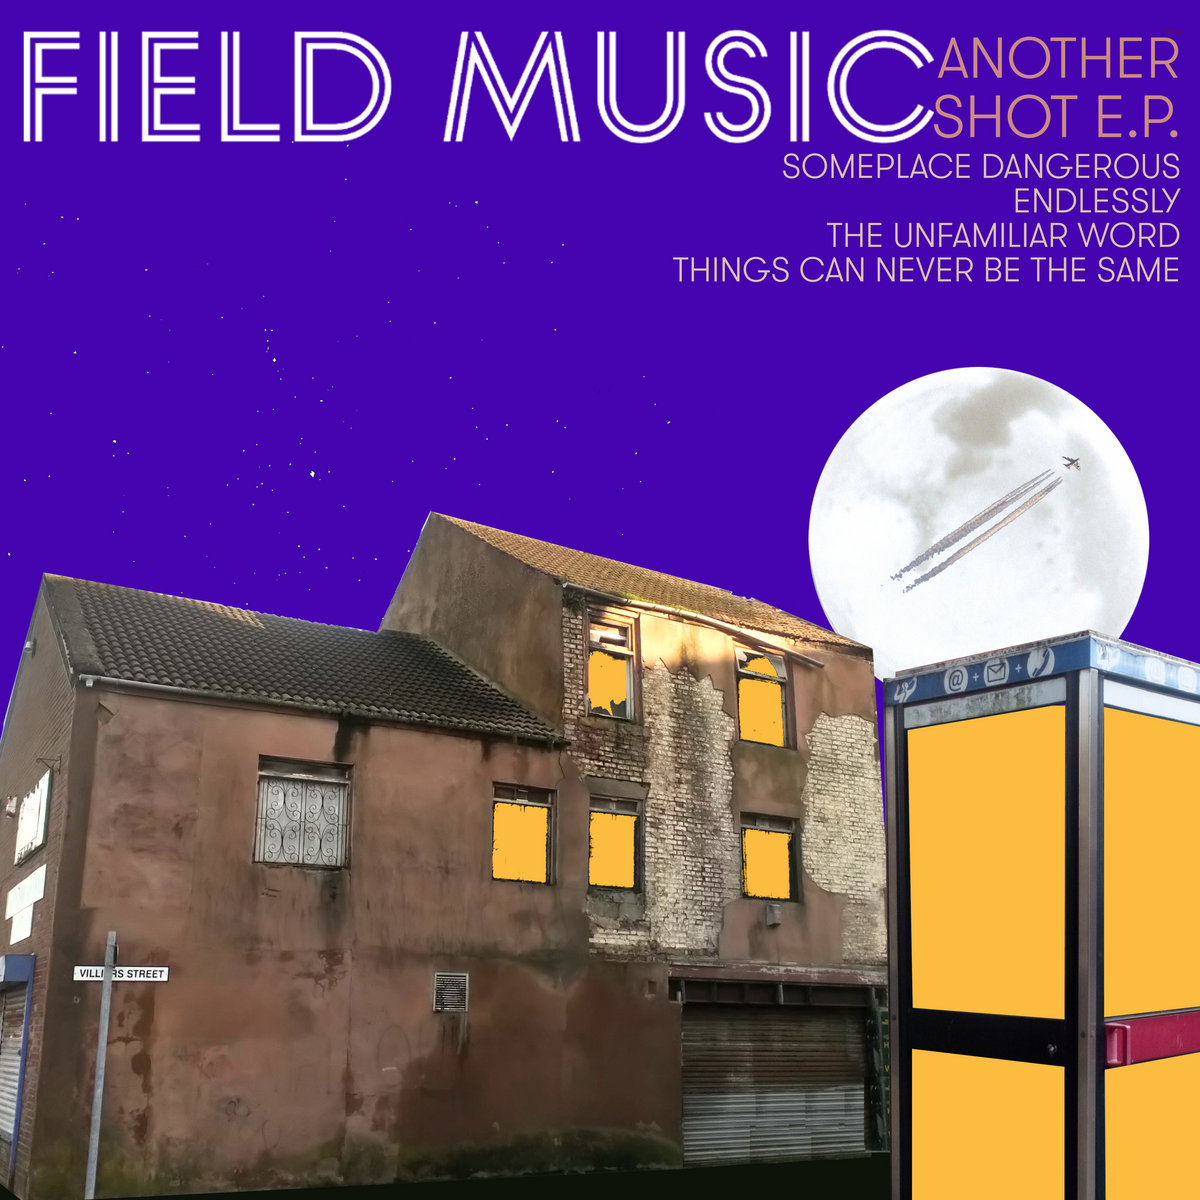 Field Music - Another Shot EP